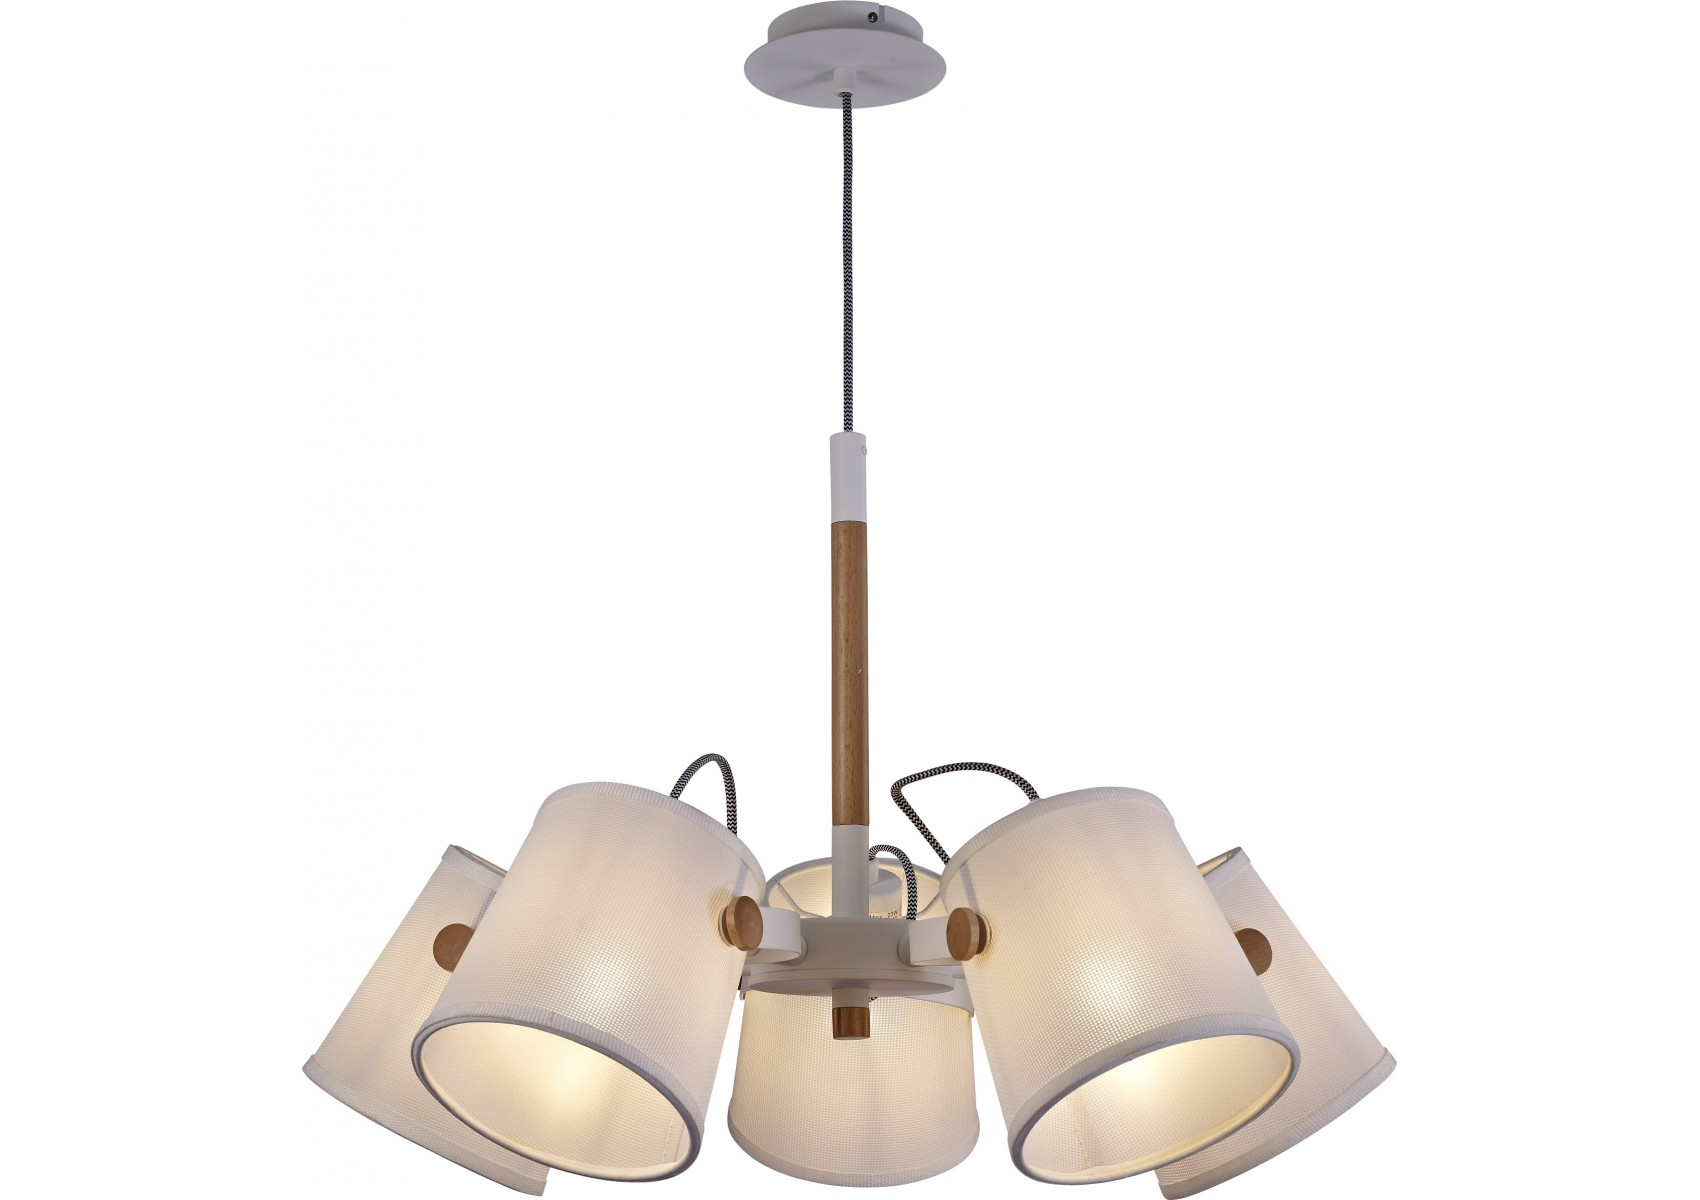 Suspension scandinave nordica 5 lampes mantra boite for Suspension 3 lampes